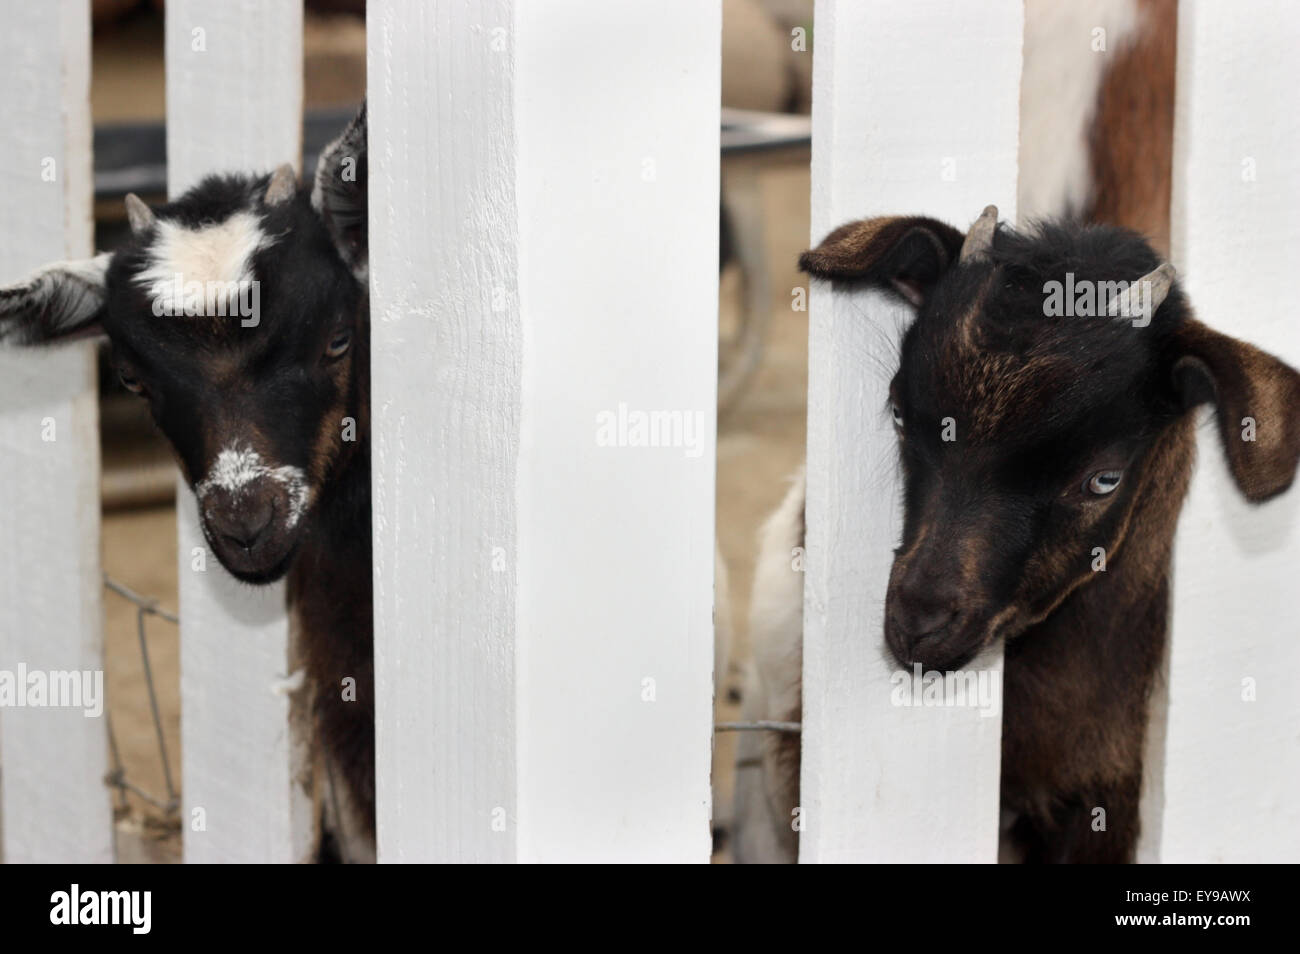 Goat And Fence Stock Photos & Goat And Fence Stock Images - Alamy